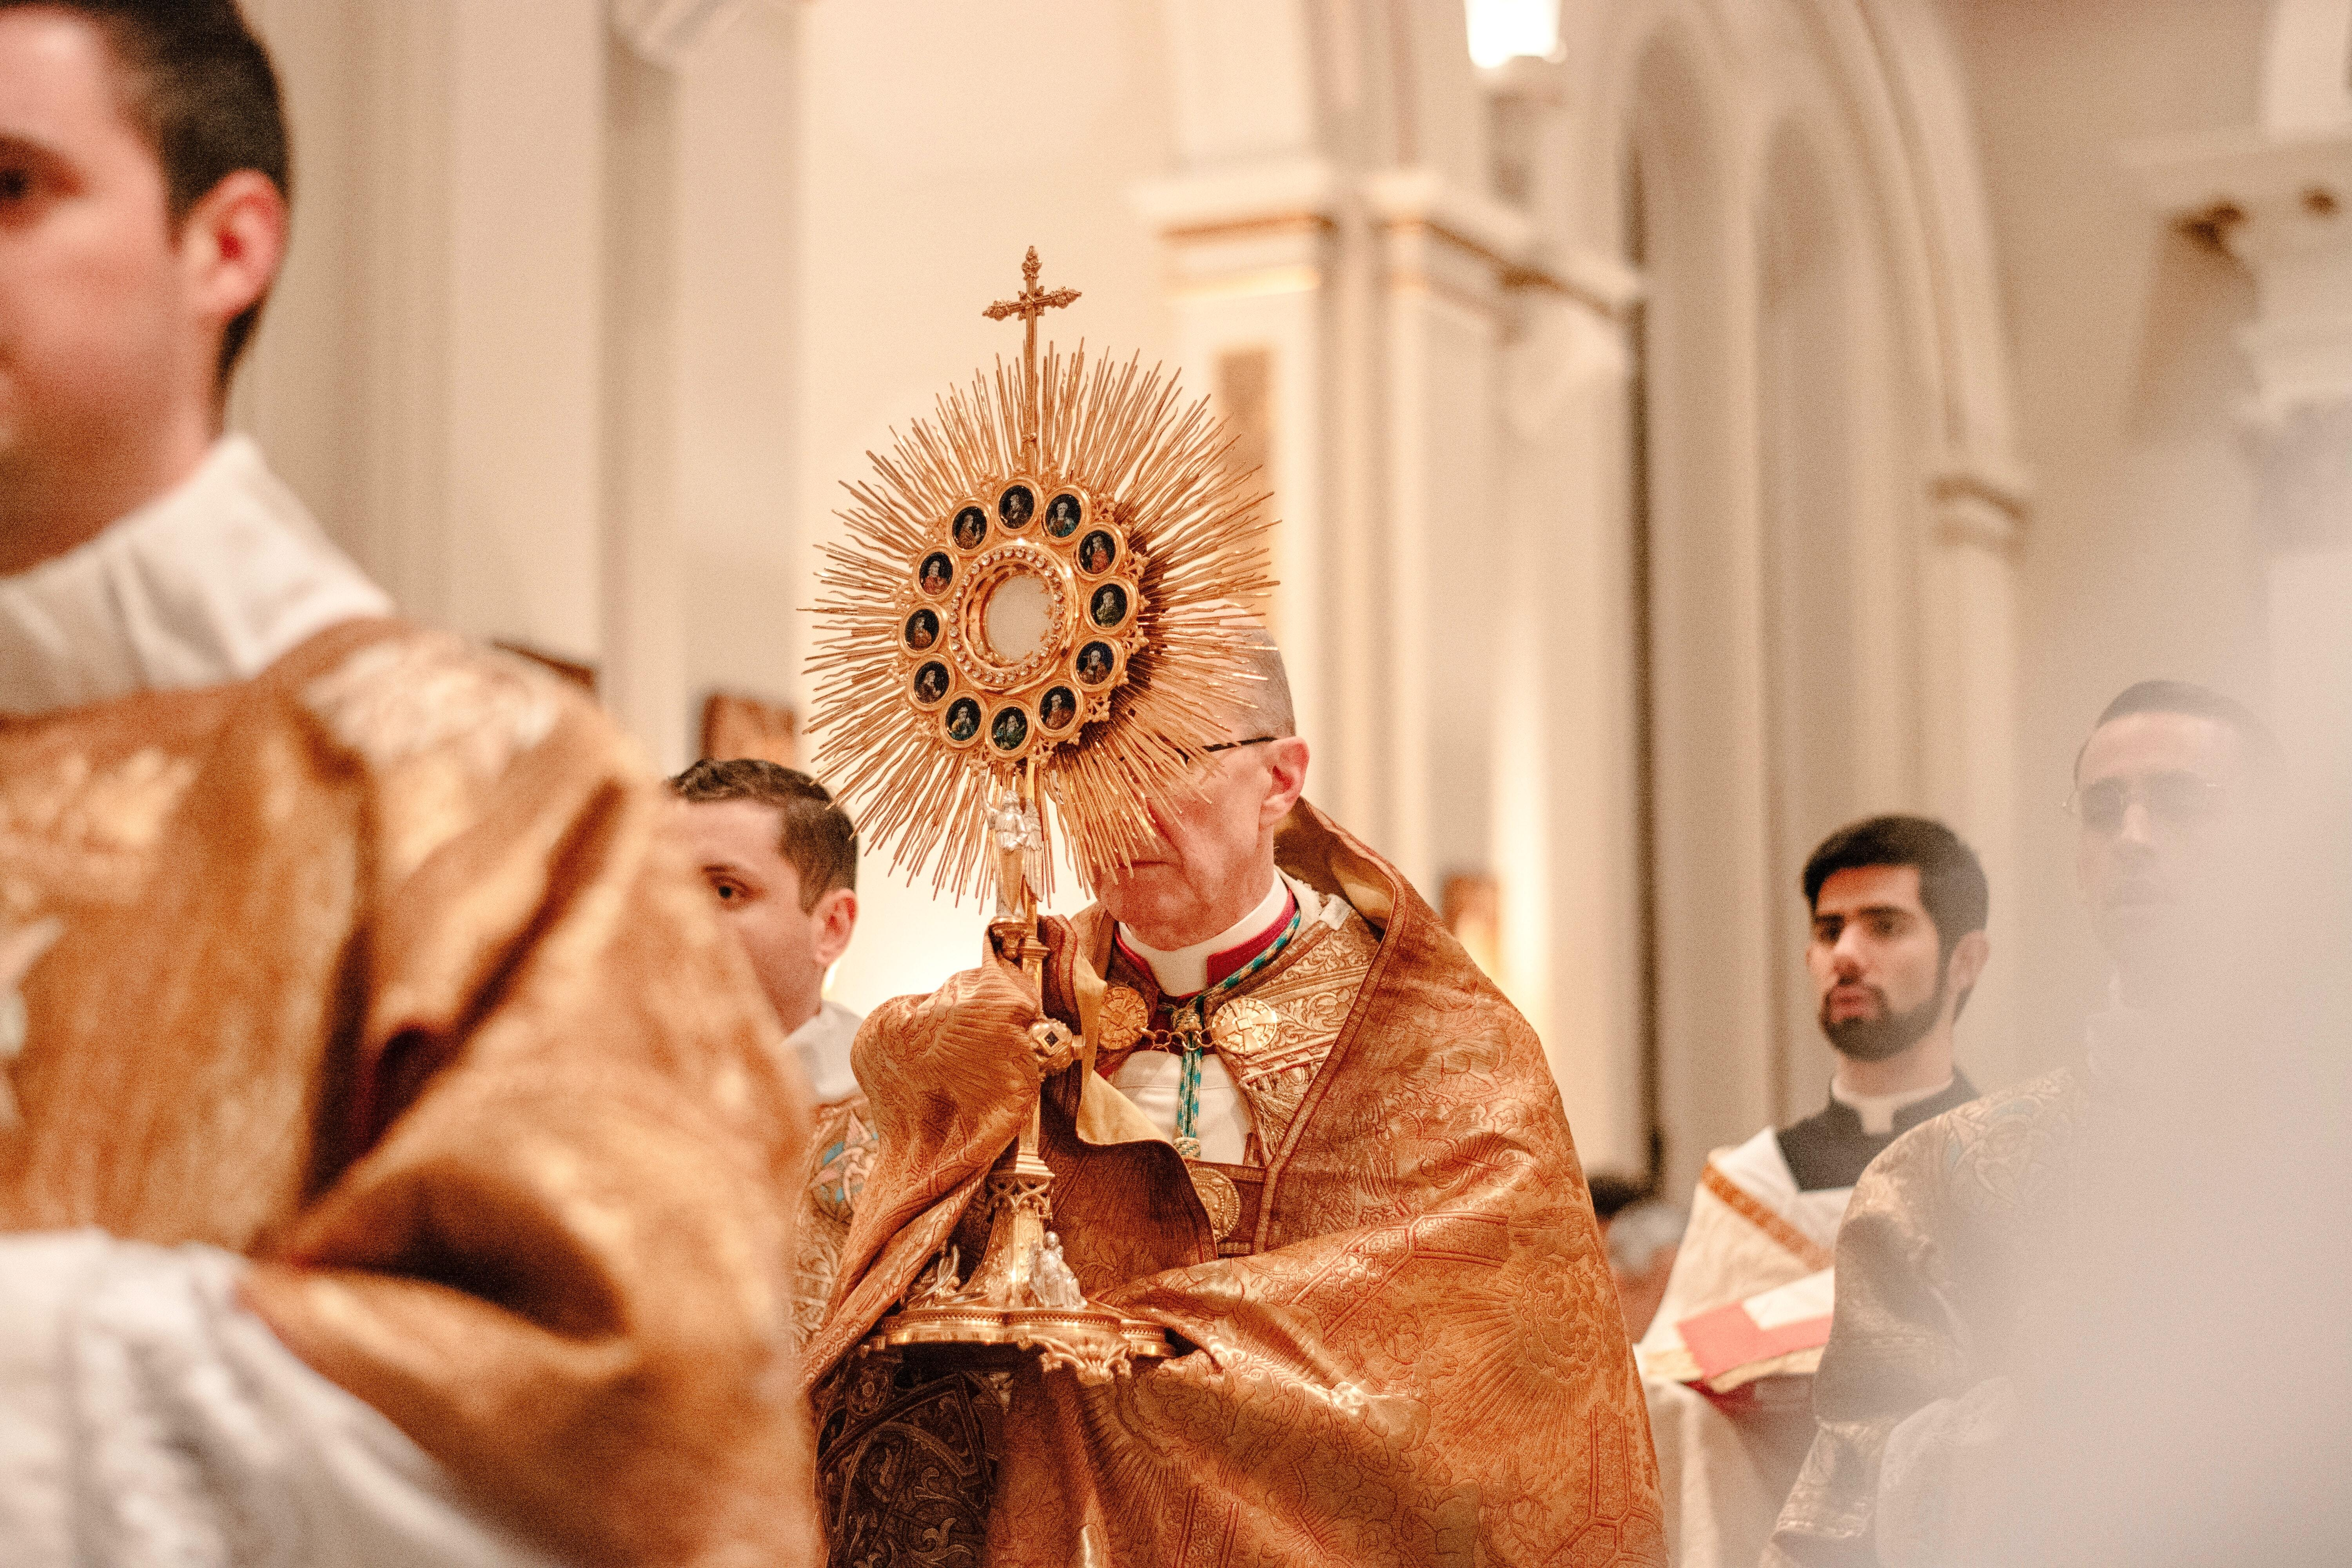 When we face the sun we get a tan. But, when we stand before Jesus in the Eucharist, we become Saints. -Bl. Carlo Acutis, the first millennial to be beatified.